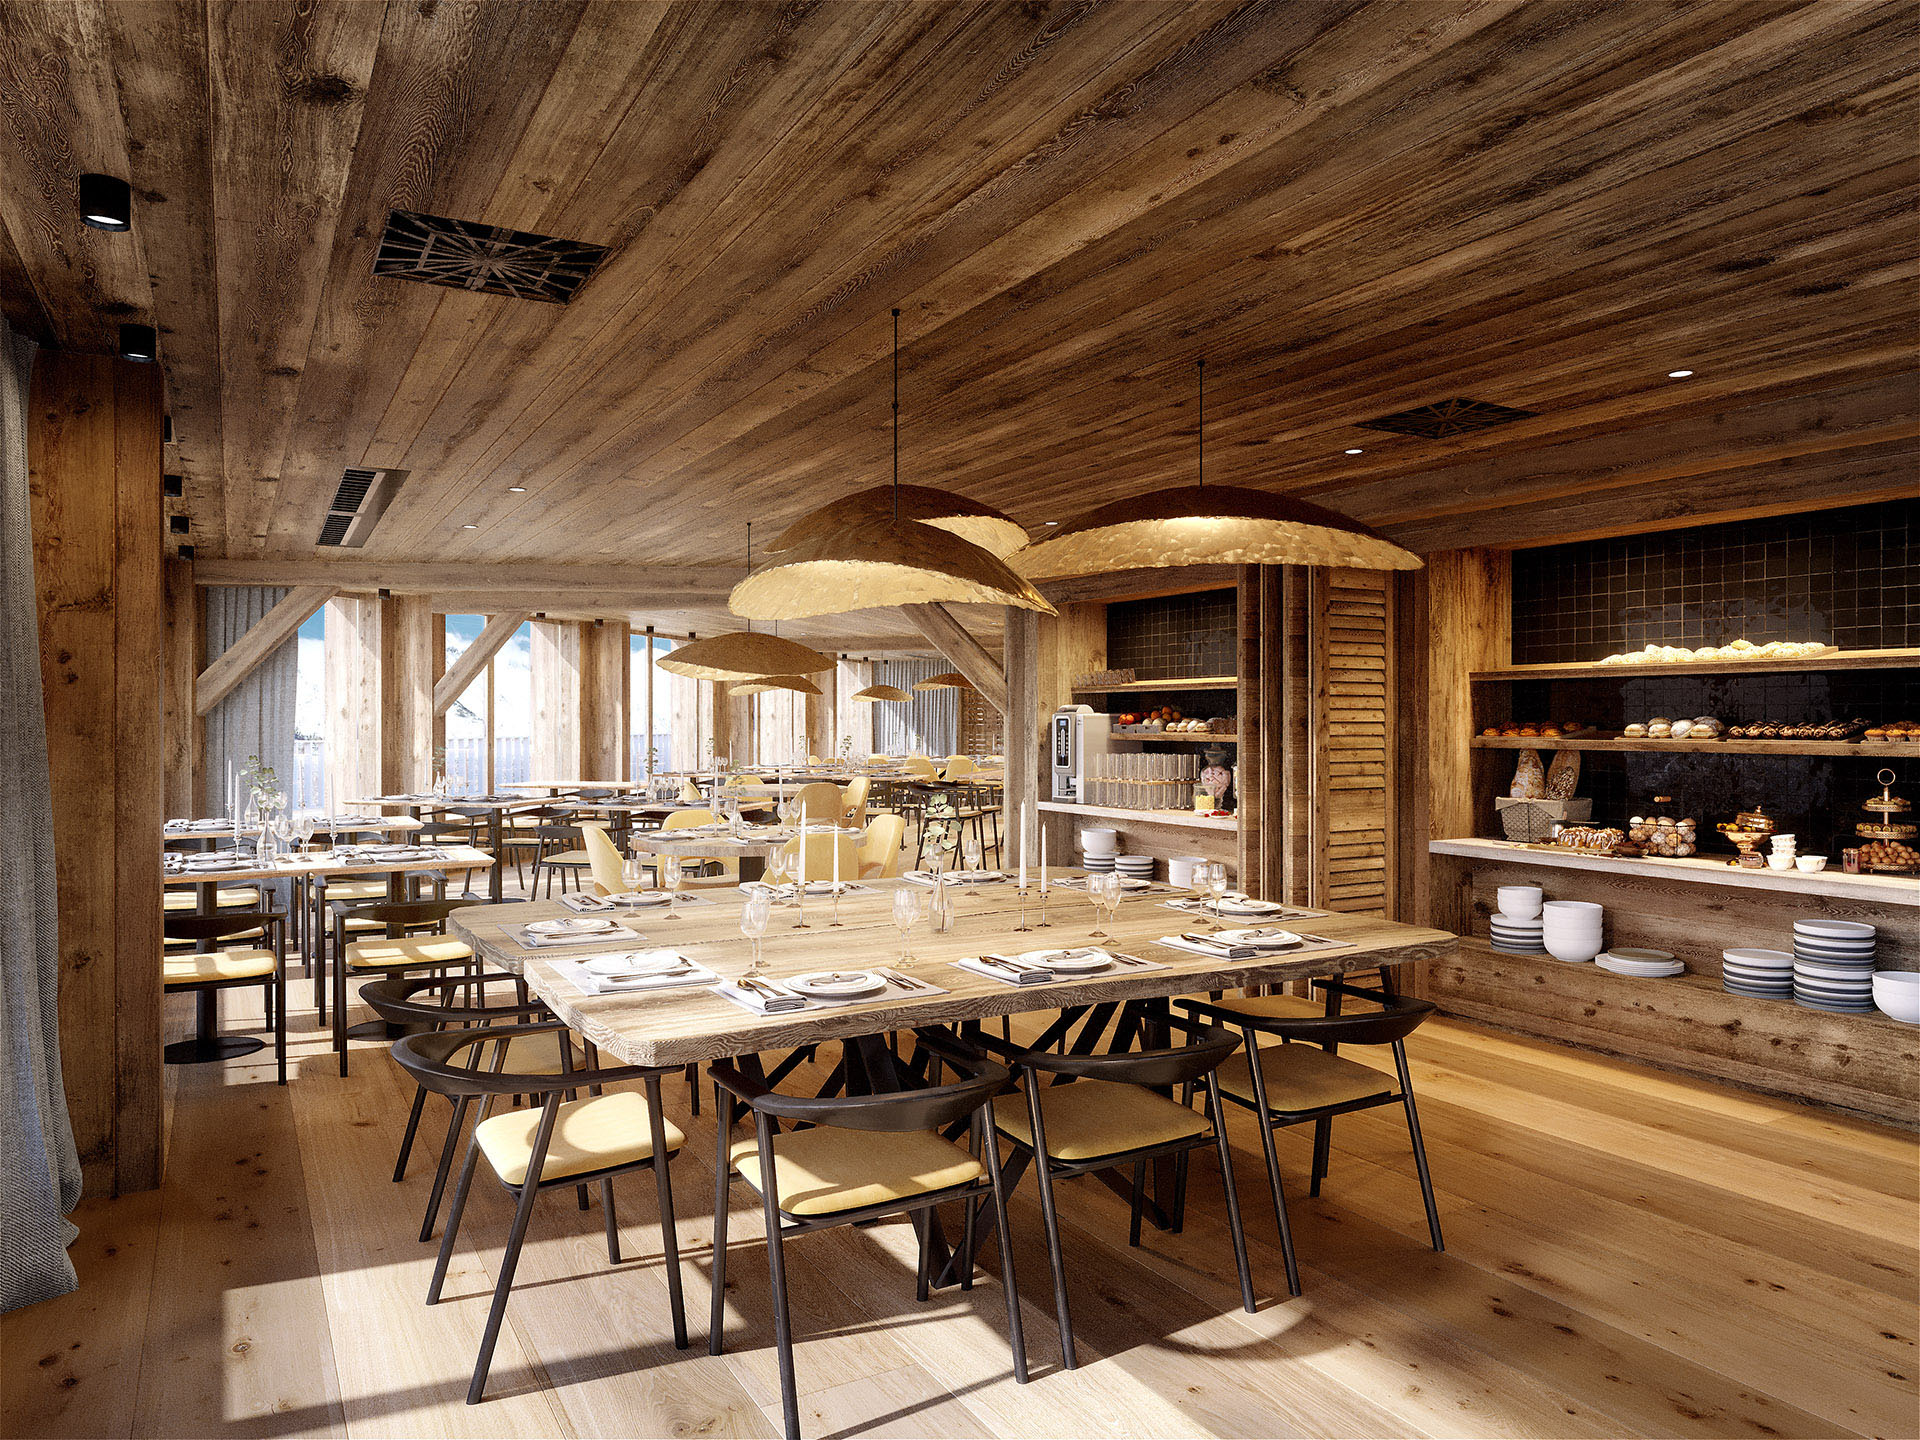 3D computer image of a rustic wooden restaurant in a mountain chalet